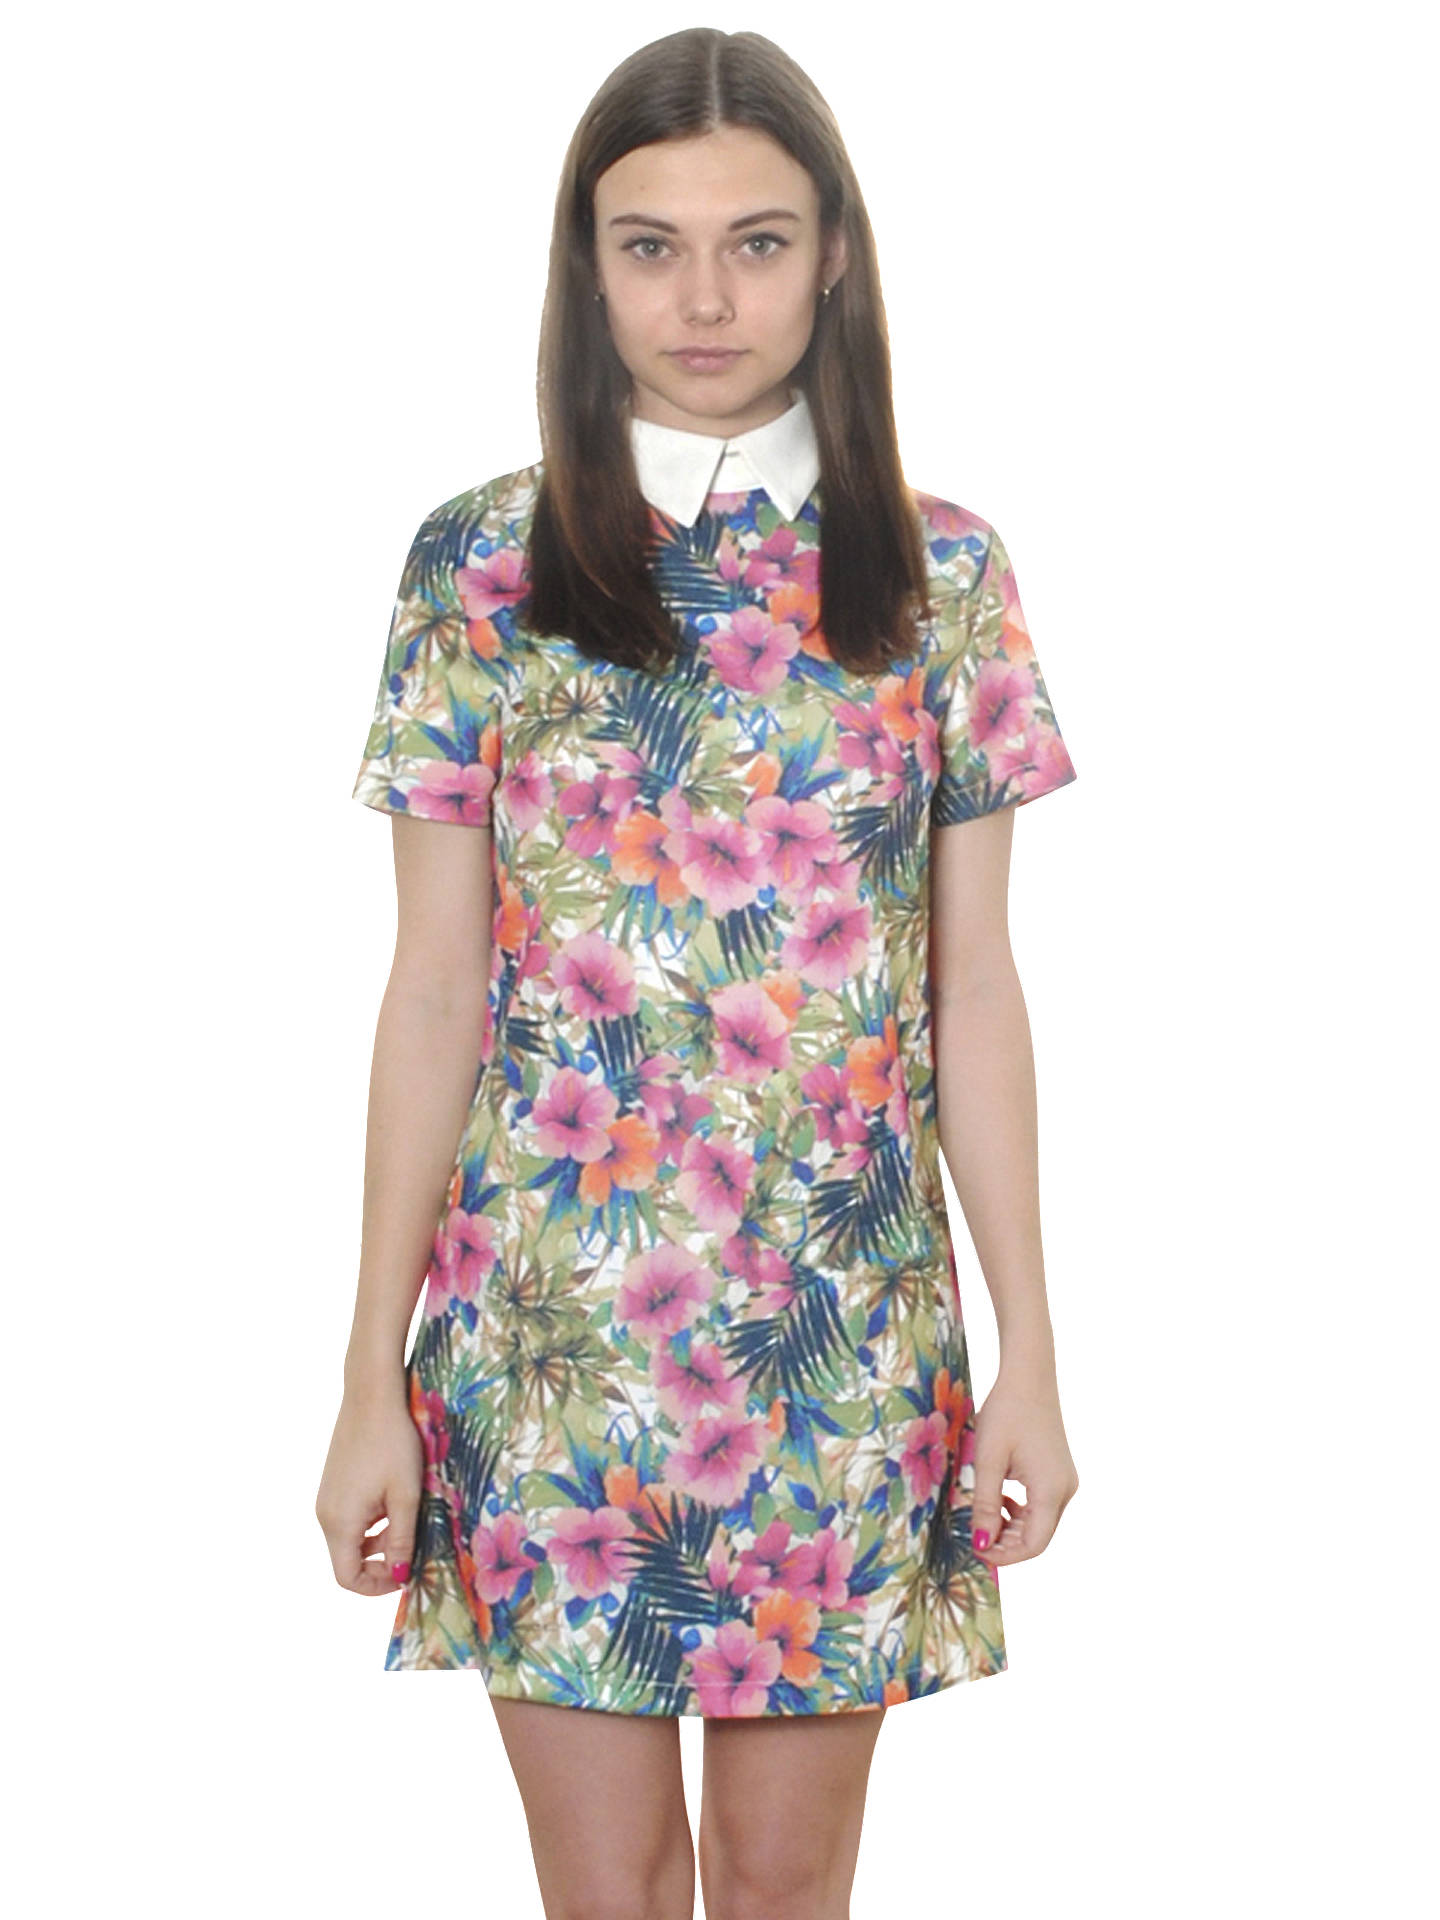 BuyTrue Decadence Collared Floral Shift Dress, Multi, 8 Online at johnlewis.com